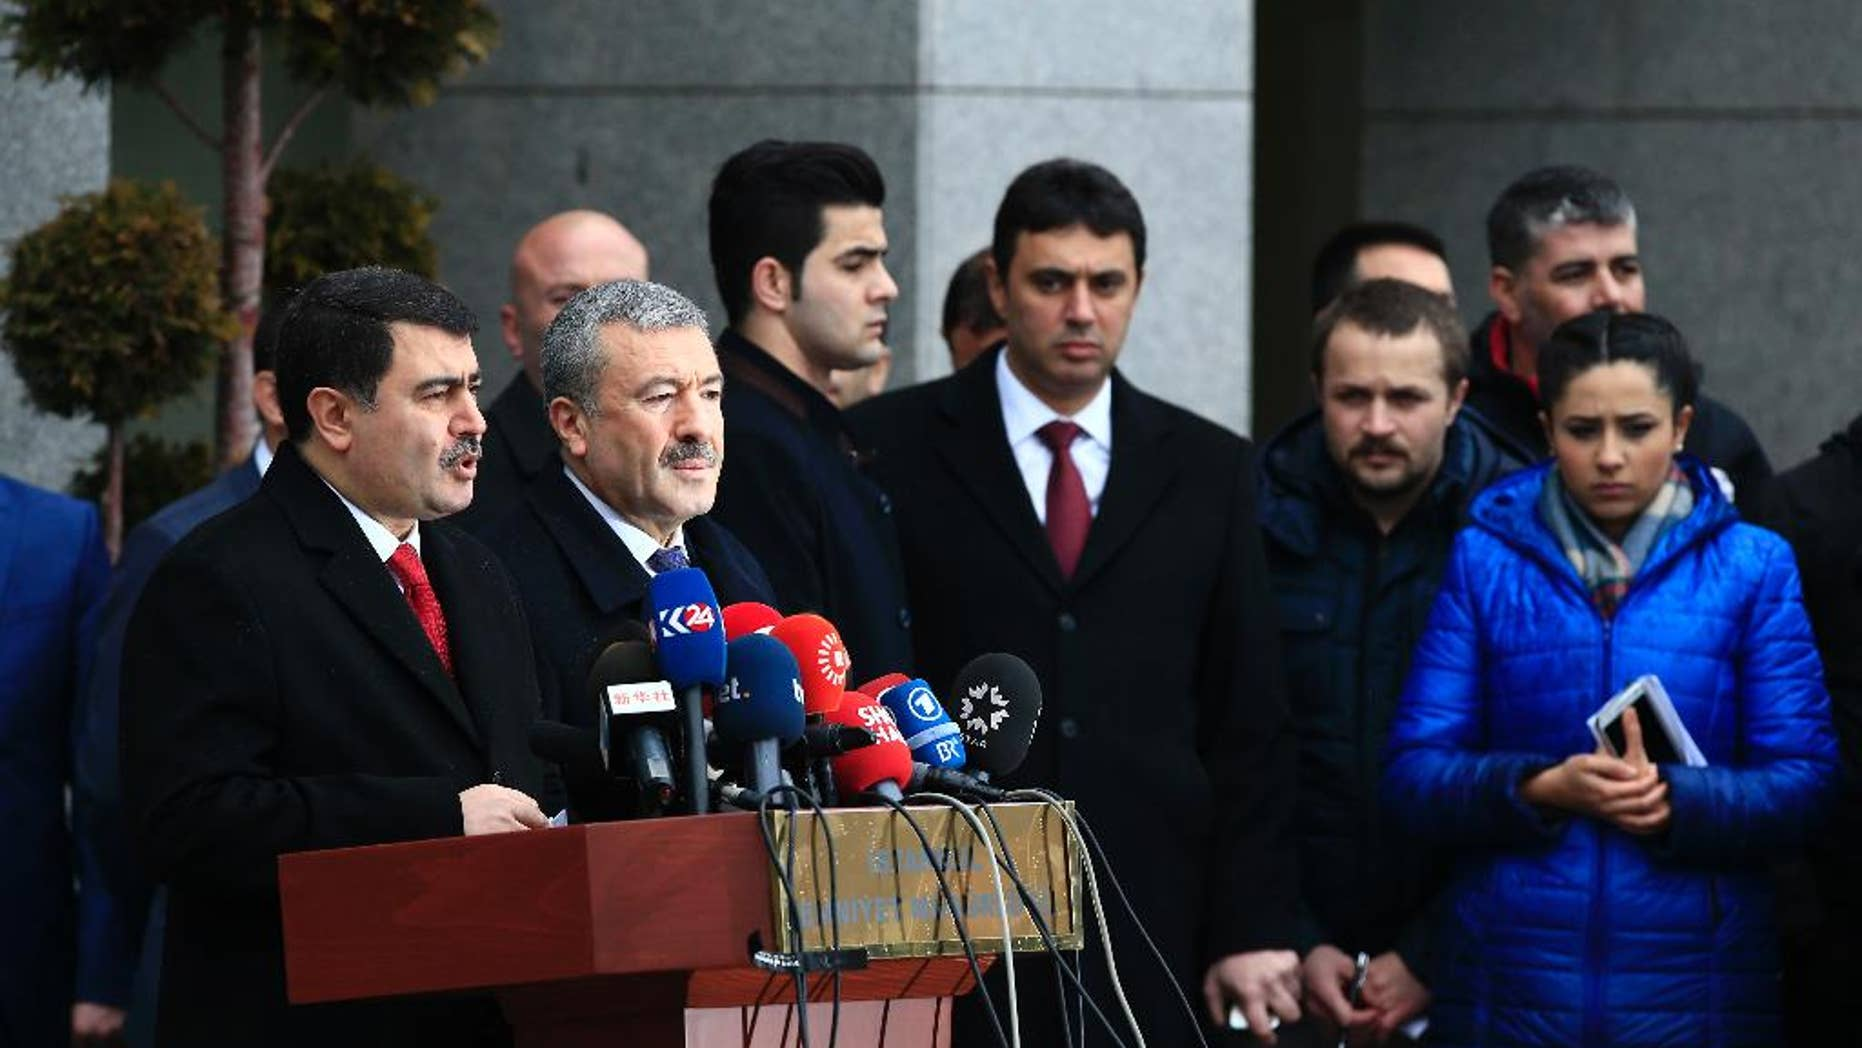 Istanbul Gov. Vasip Sahin, left, accompanied by Police Chief Mustafa Caliskan, second from left, talks to the media during a news conference regarding the arrest of a suspect of New Year's nightclub attack in Istanbul, Tuesday, Jan. 17, 2017. Turkish officials on Tuesday confirmed that the gunman who carried out the deadly New Year's attack on an Istanbul nightclub, which was claimed by the Islamic State group, has been detained. (AP Photo/Lefteris Pitarakis)